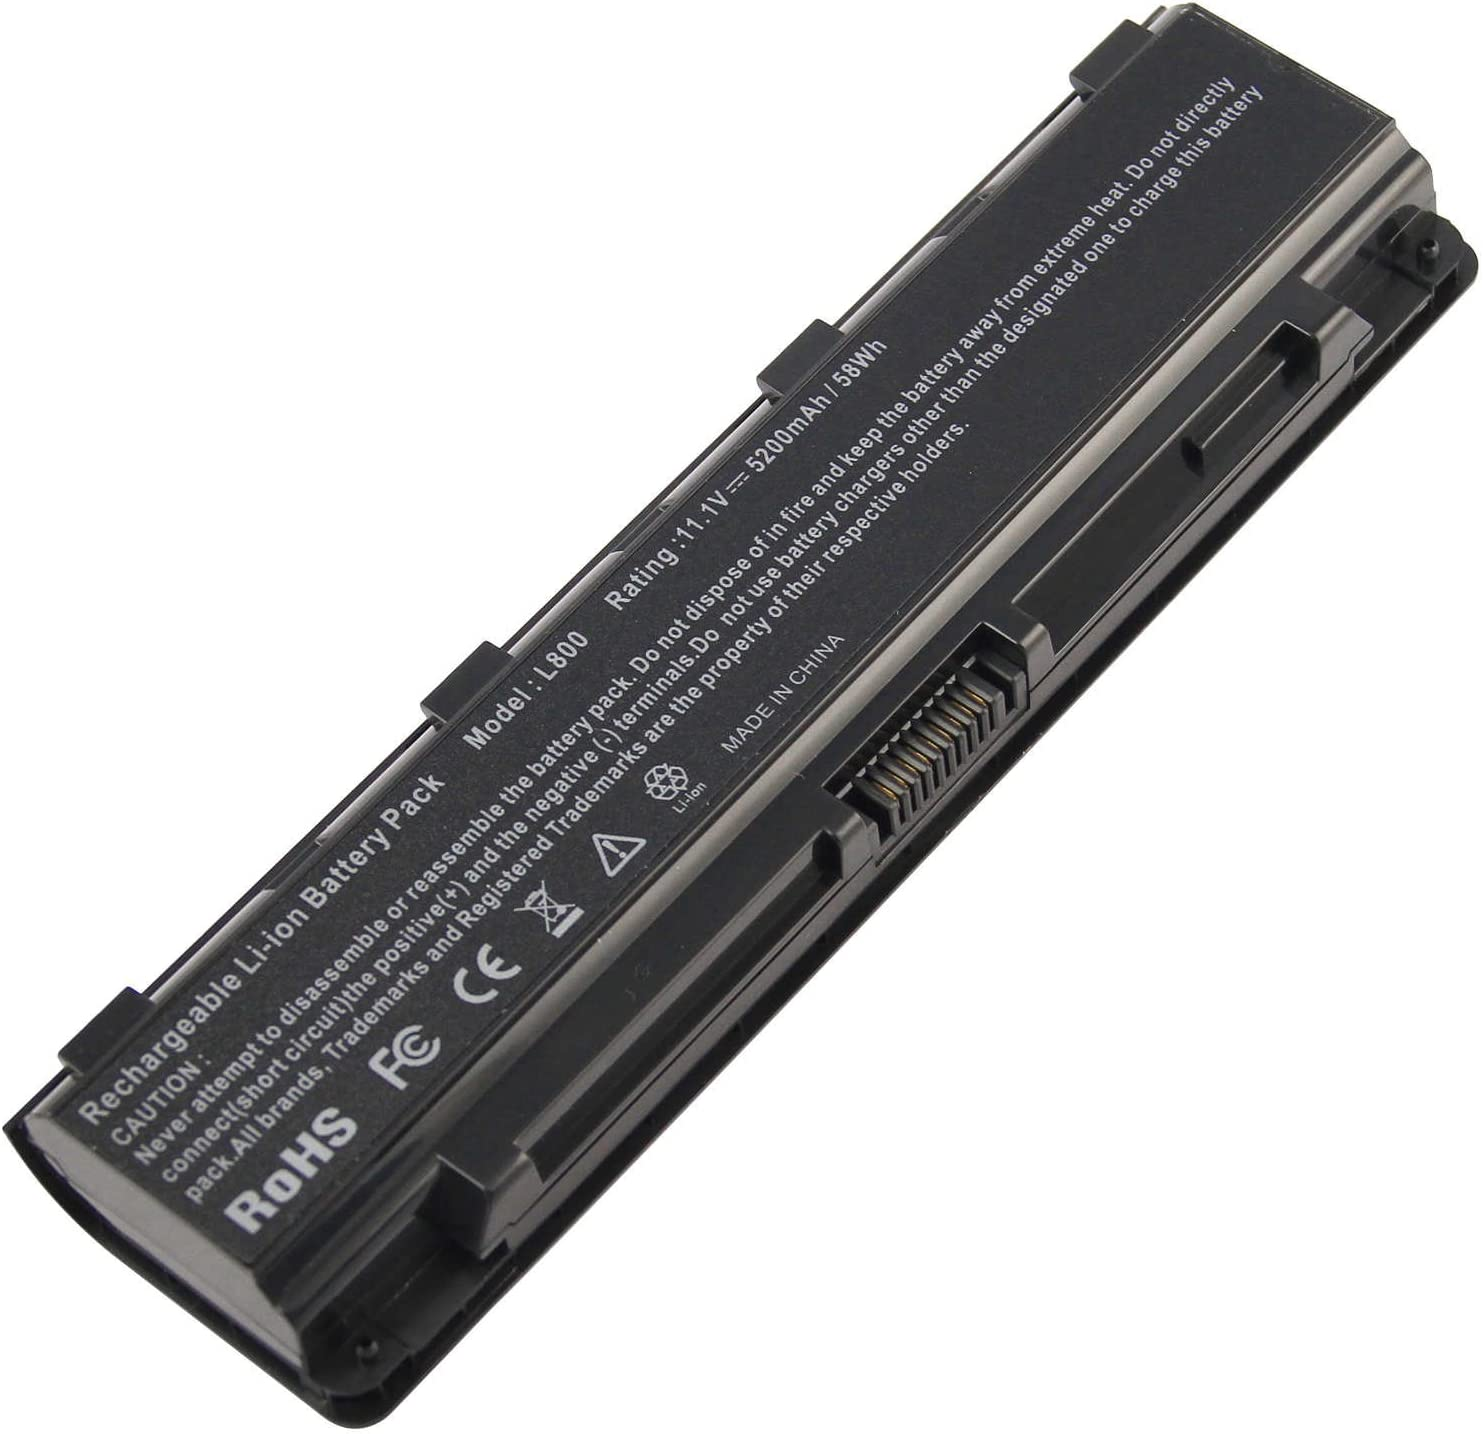 Laptop Battery for Toshiba Satellite S70DT C55-A5302 C55-A5308 C55-A5309 C55D-A5150 C55T-A5314 Battery PA5024U-1BRS PA5121U-1BRS